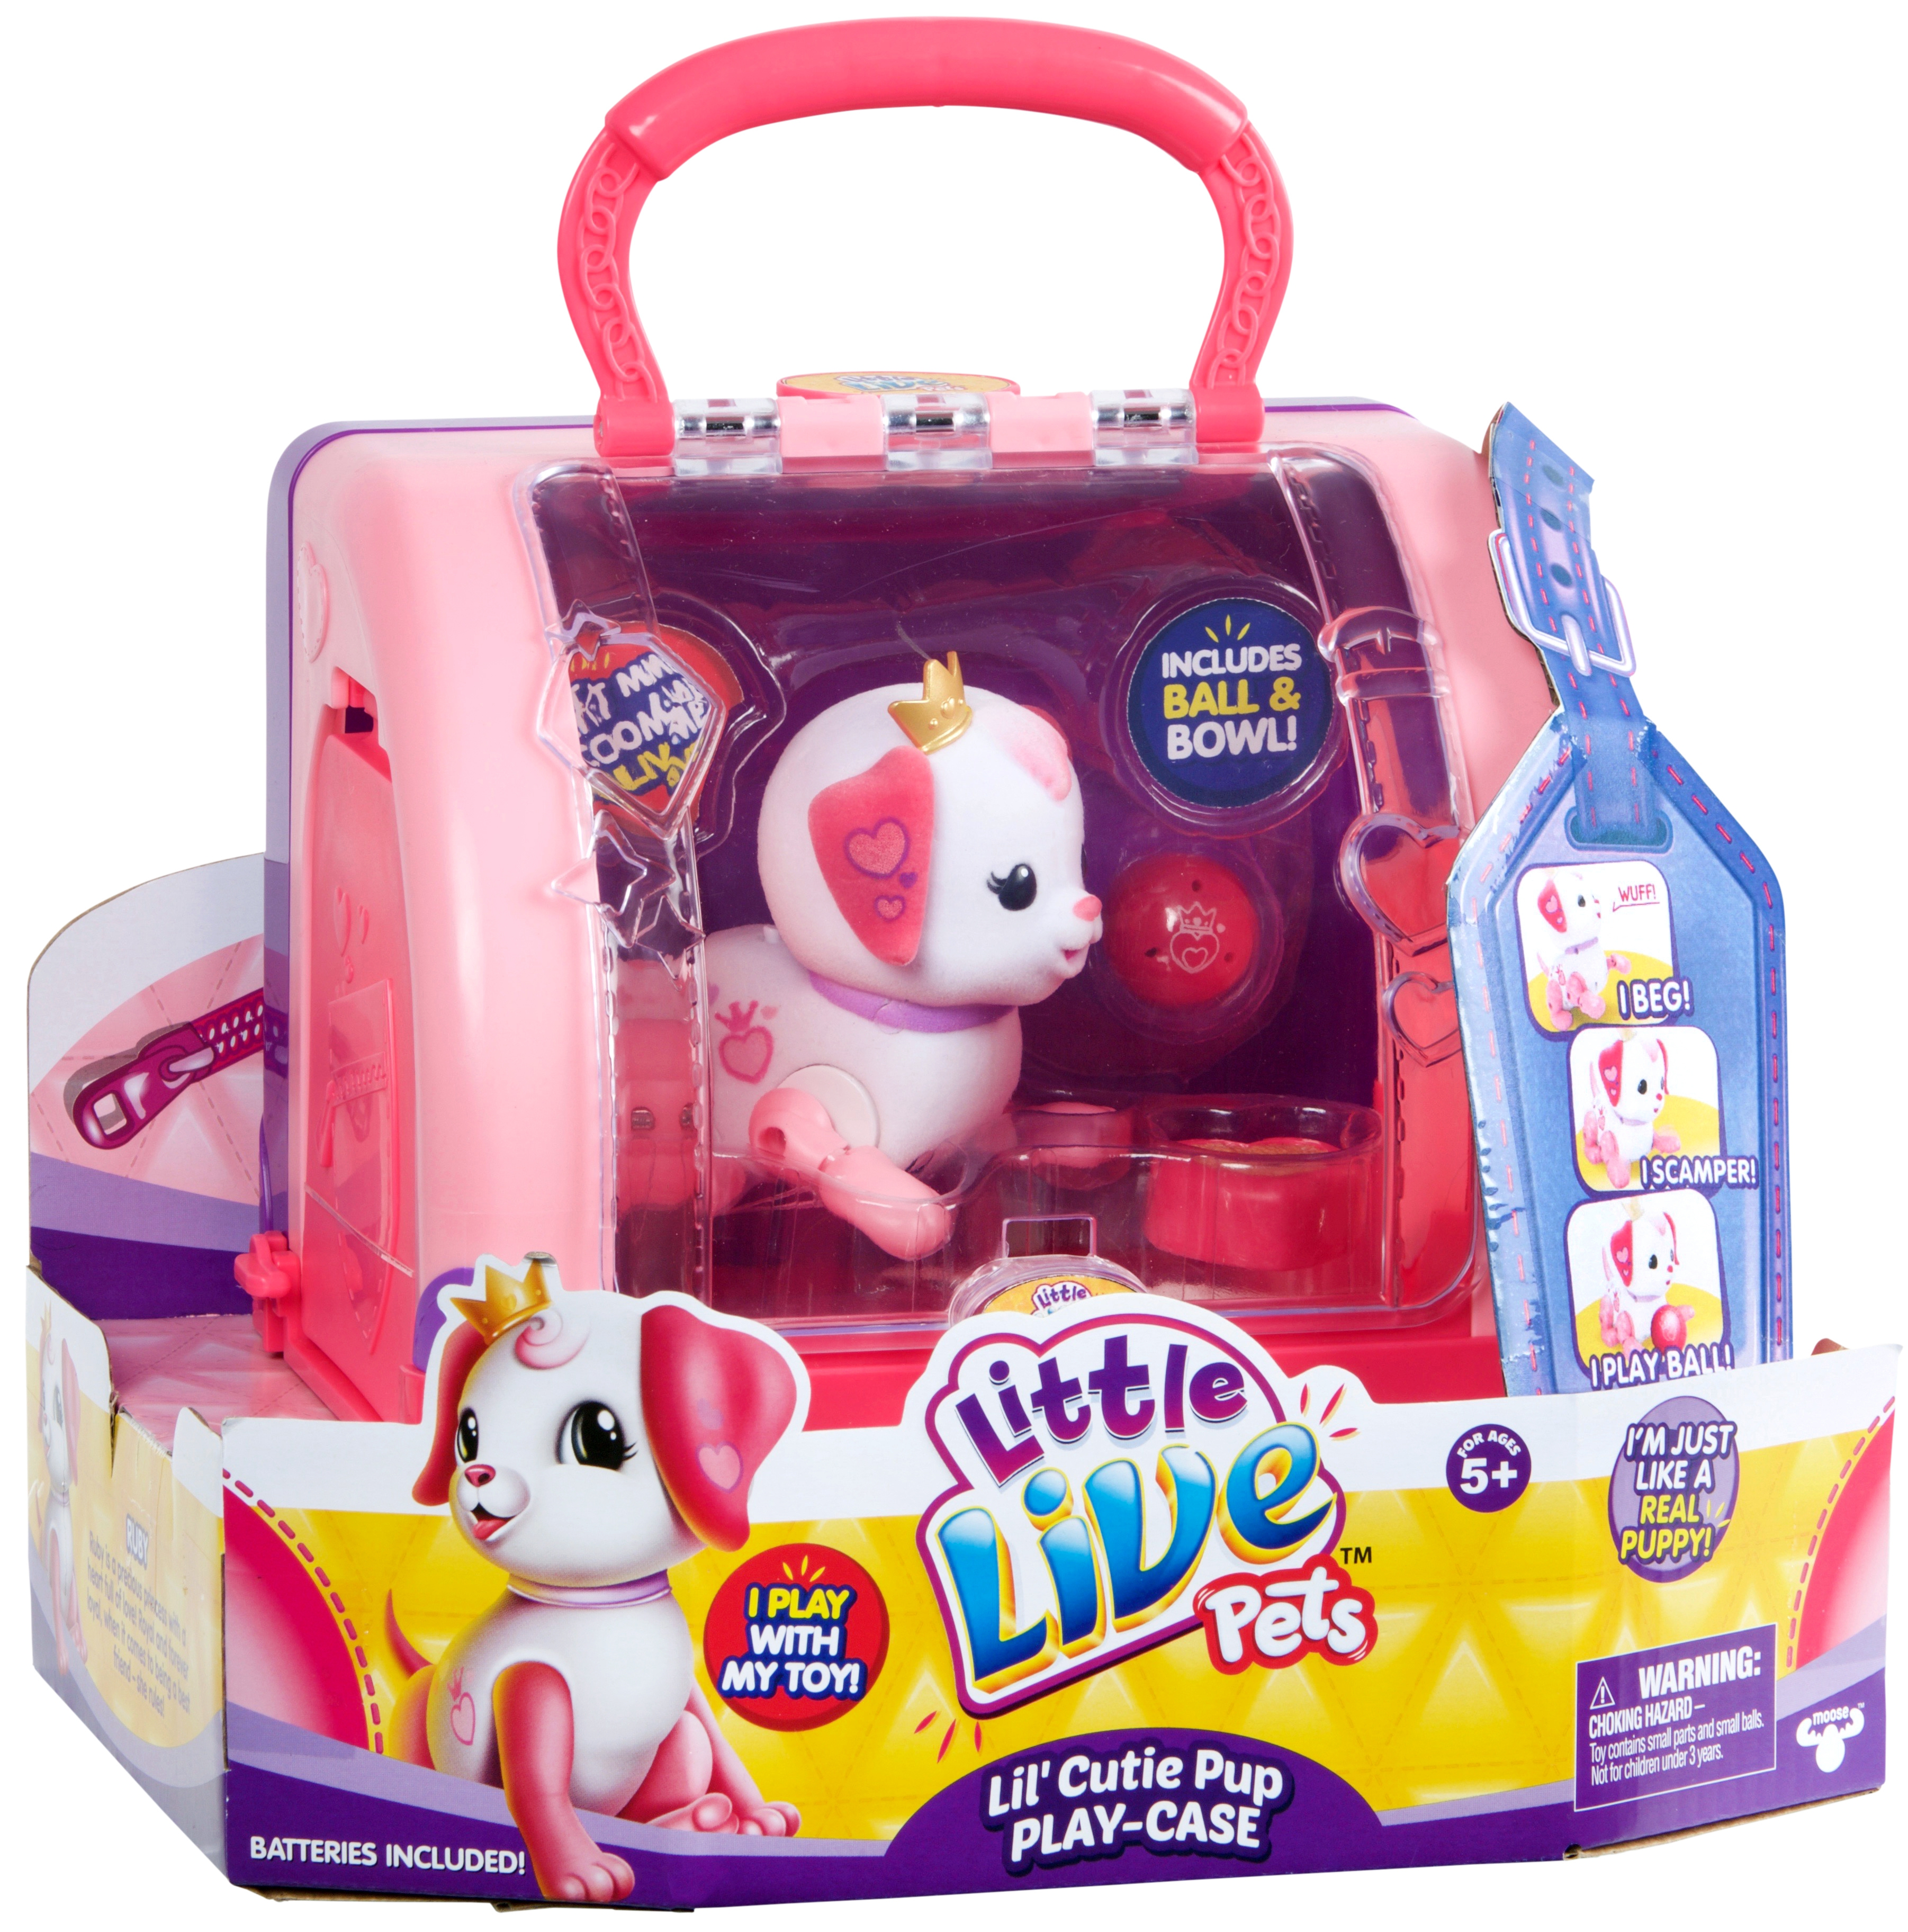 LITTLE LIVE PETS SMALL PUPPY PLAYSET